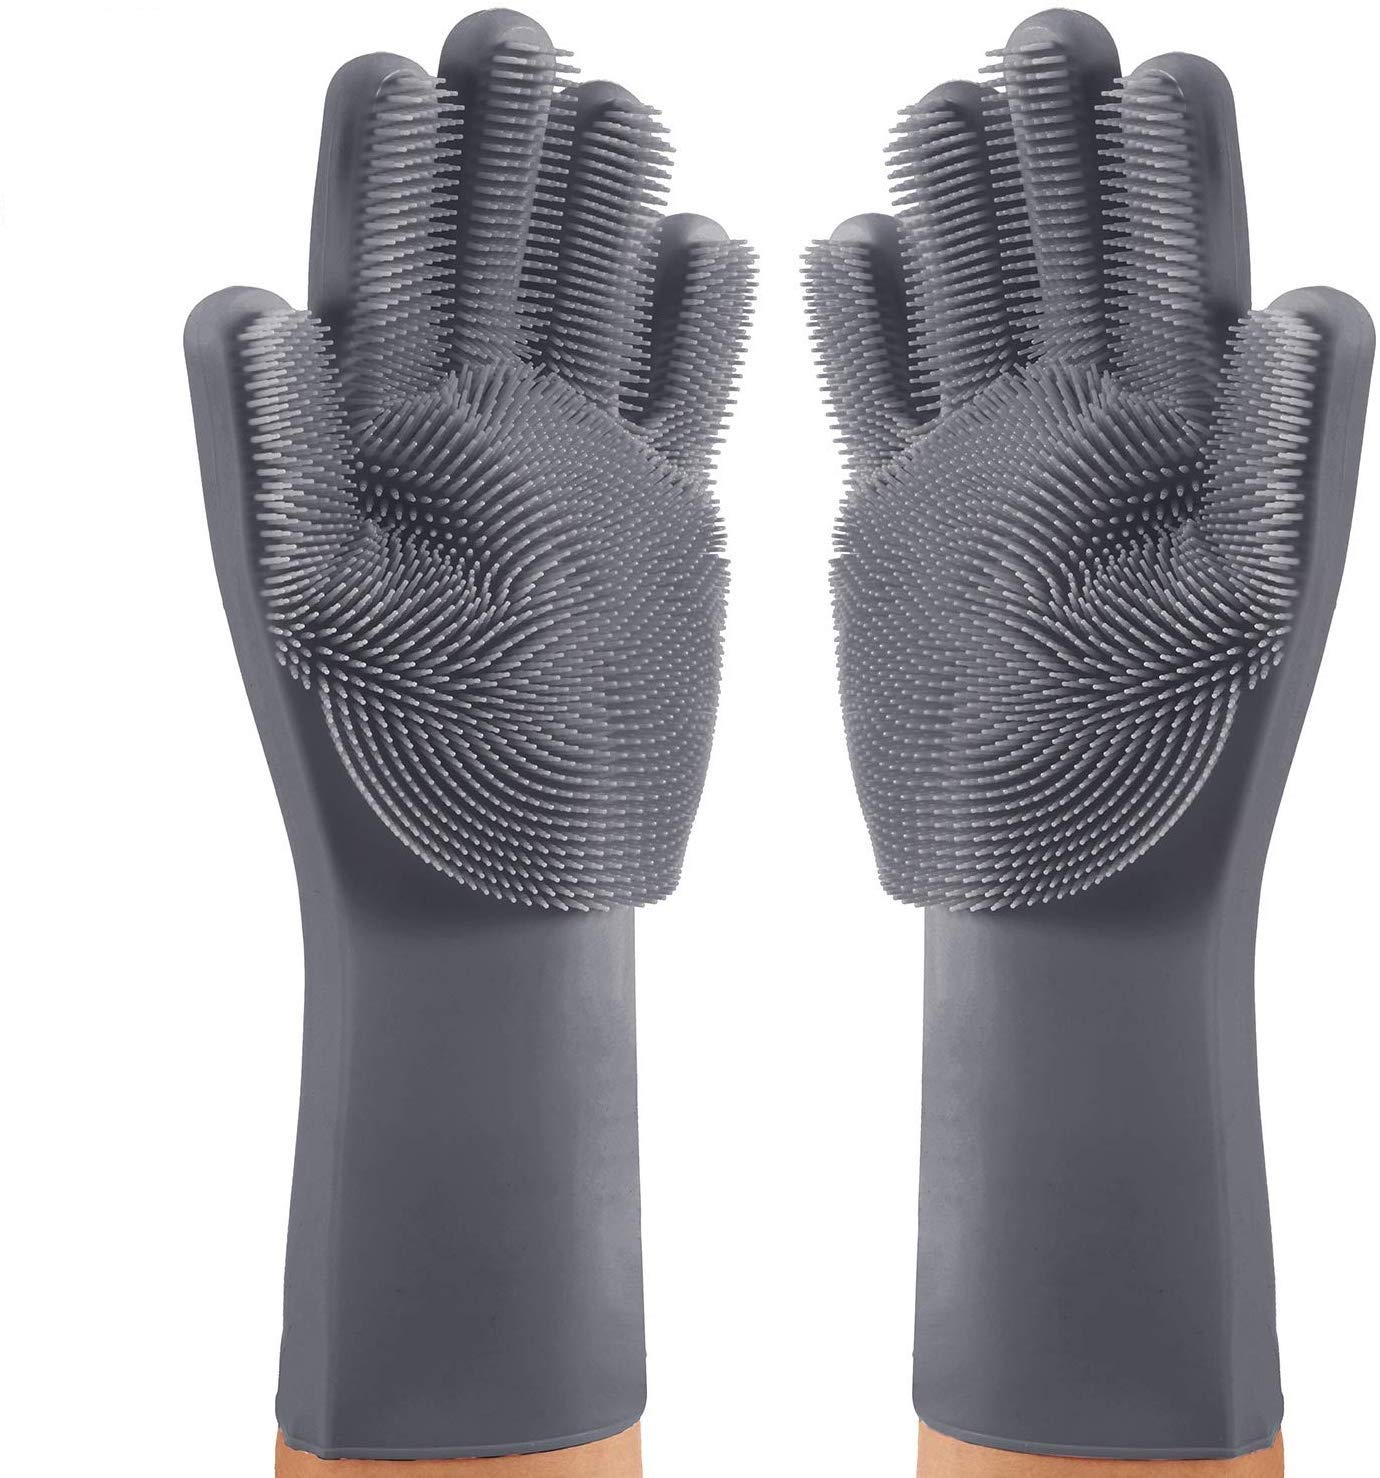 Silicon Gloves to work in Kitchen